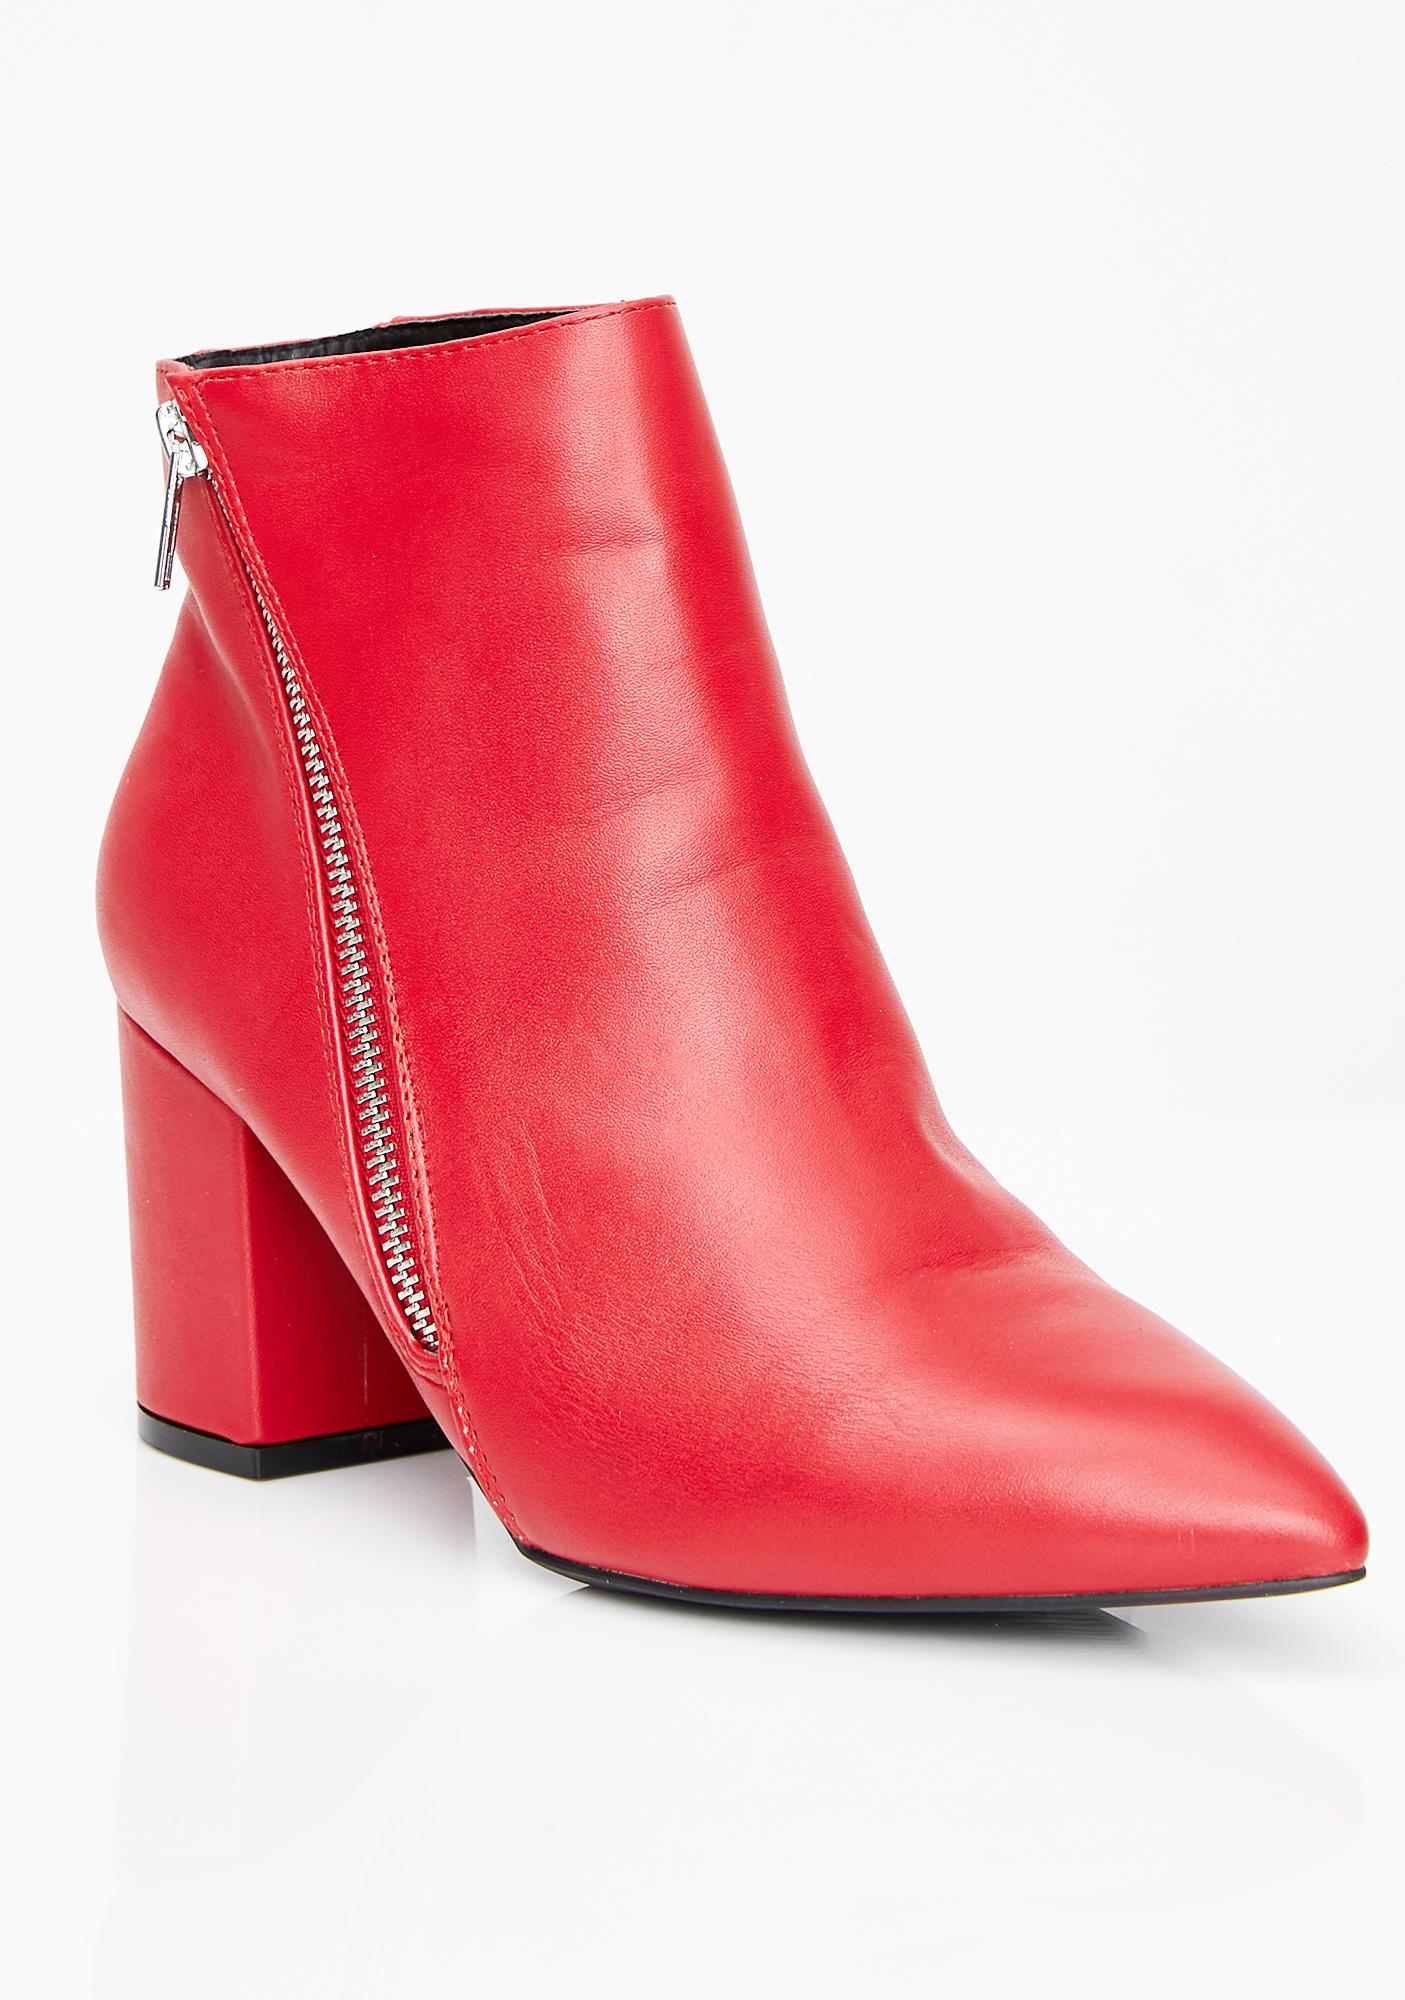 Lover Got It Bad Ankle Boots